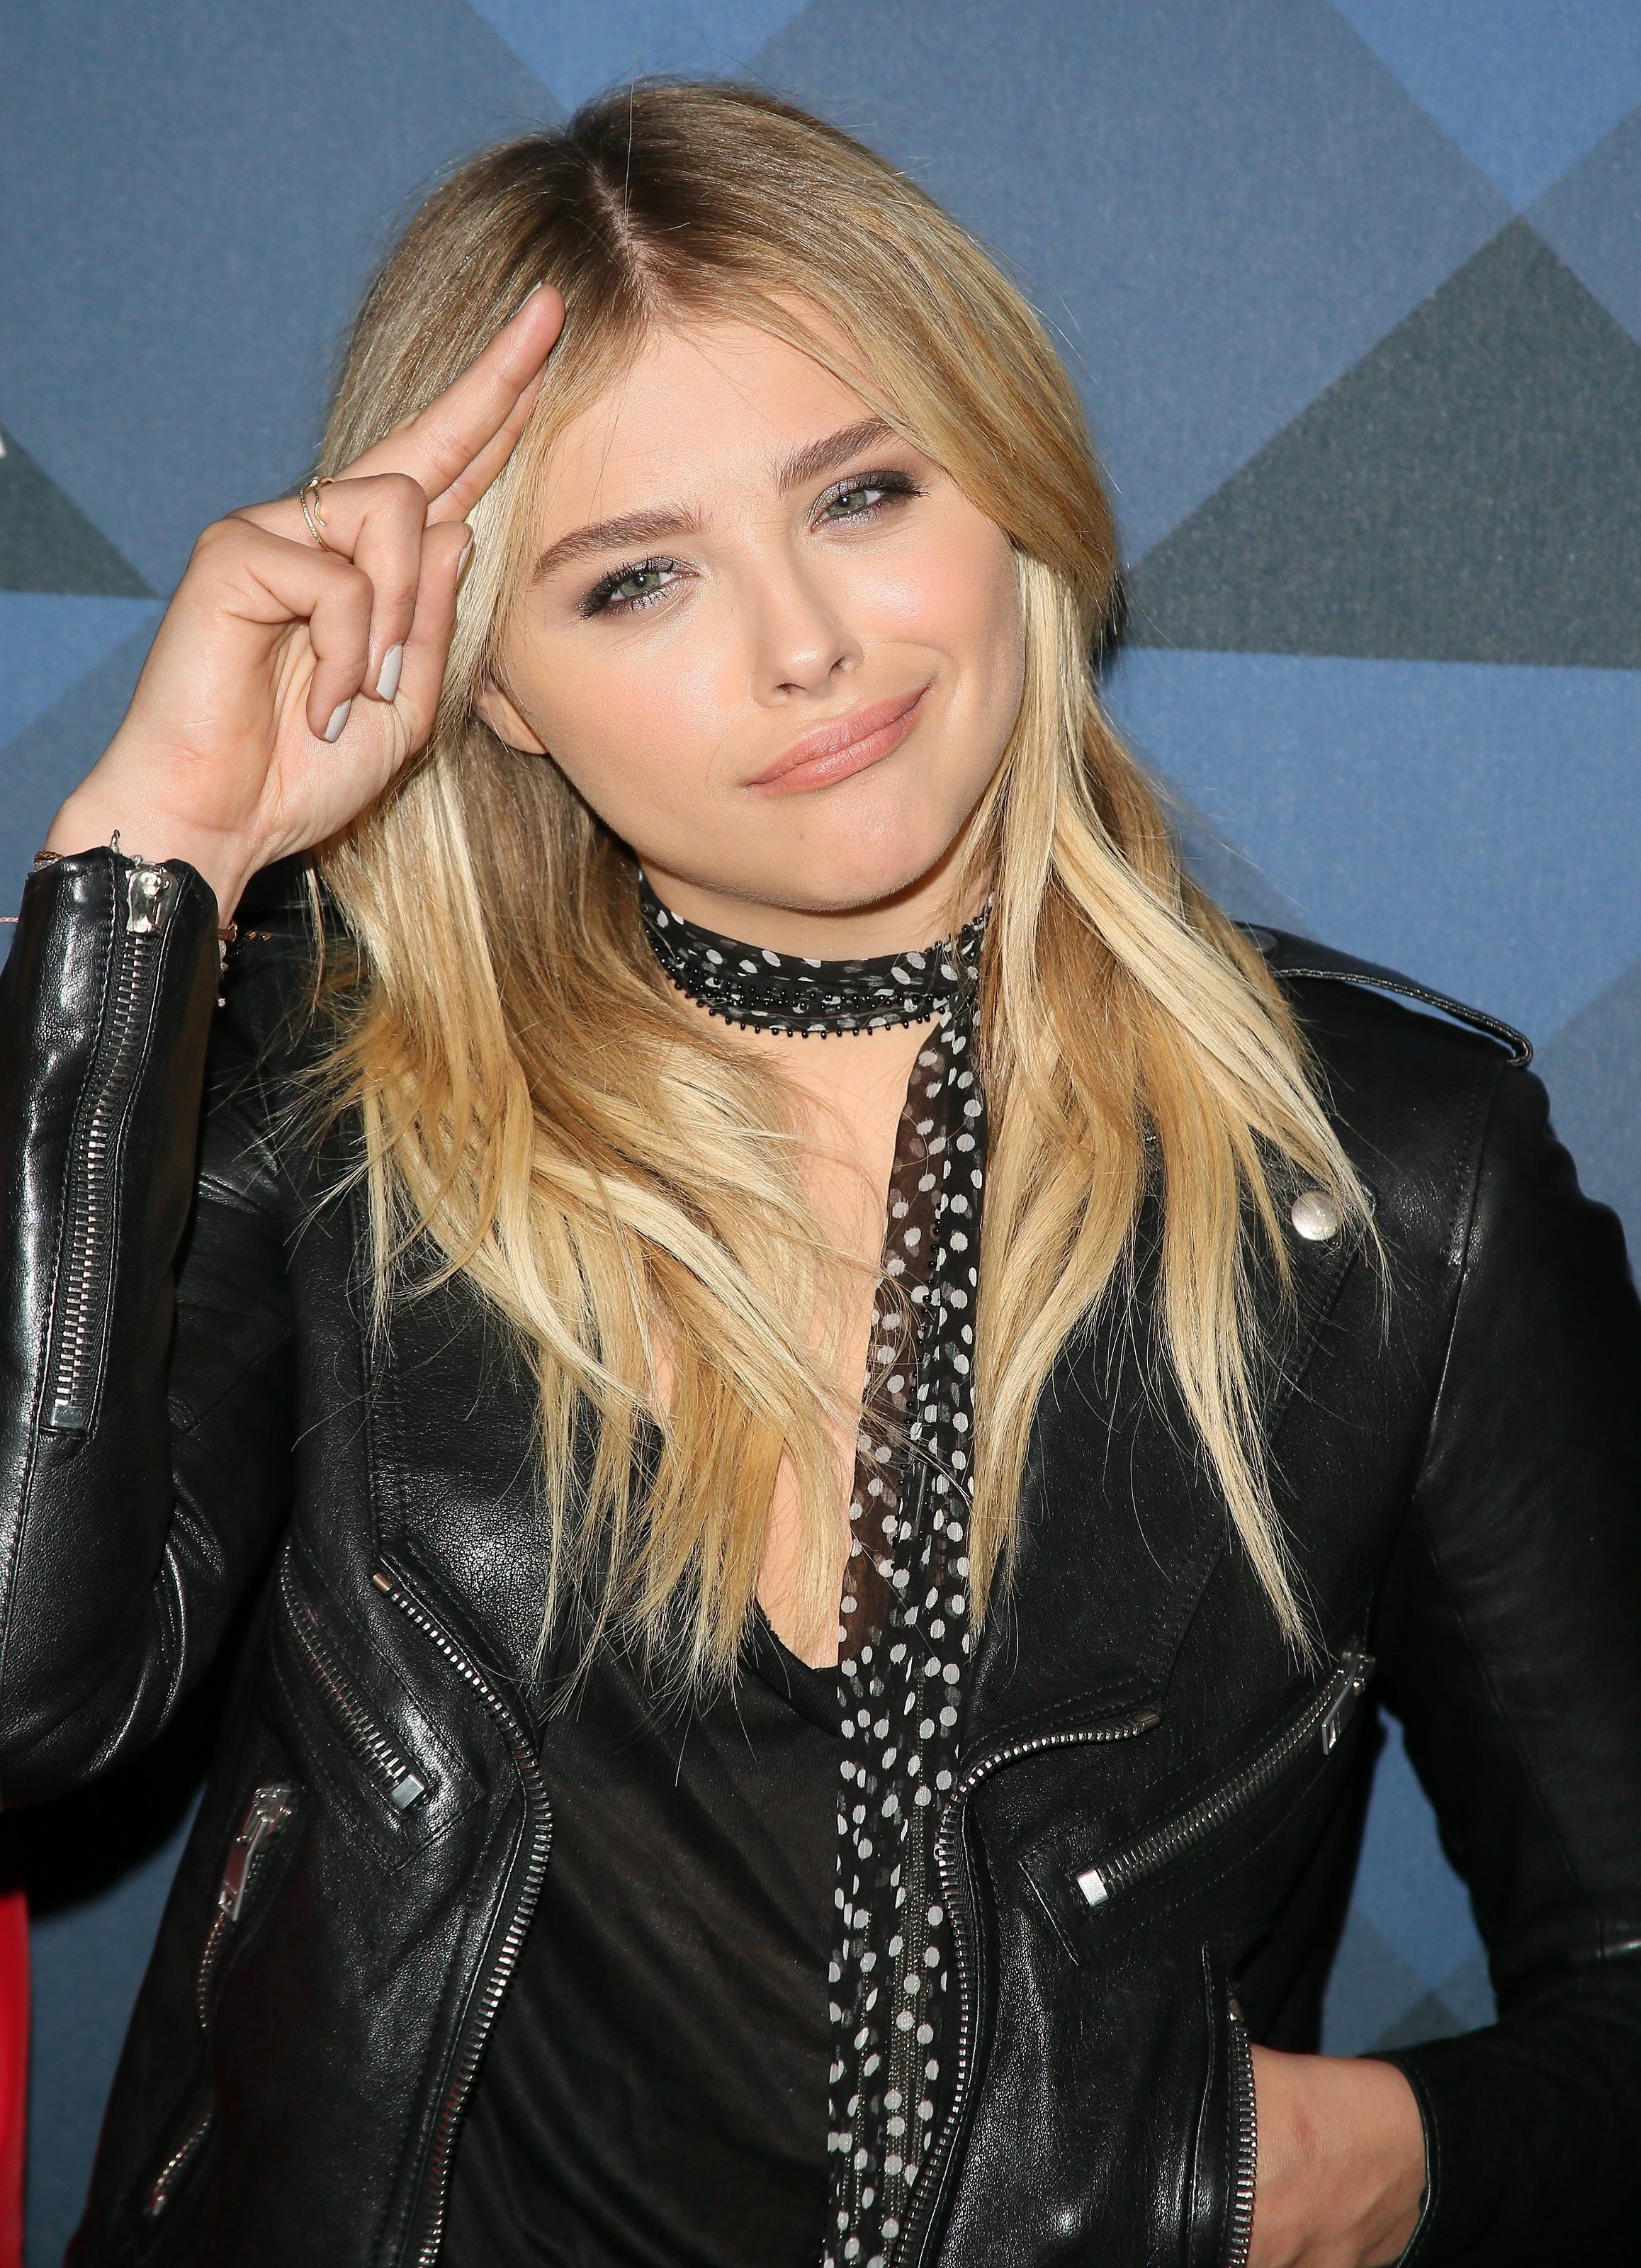 HOLLYWOOD, CA - FEBRUARY 12: Actress Chloe Grace Moretz attends the Delta Air Lines celebrates 2016 GRAMMY Weekend with 'Sites and Sounds' private performance with Leon Bridges on February 12, 2016 in Hollywood, California. (Photo by JB Lacroix/WireImage)